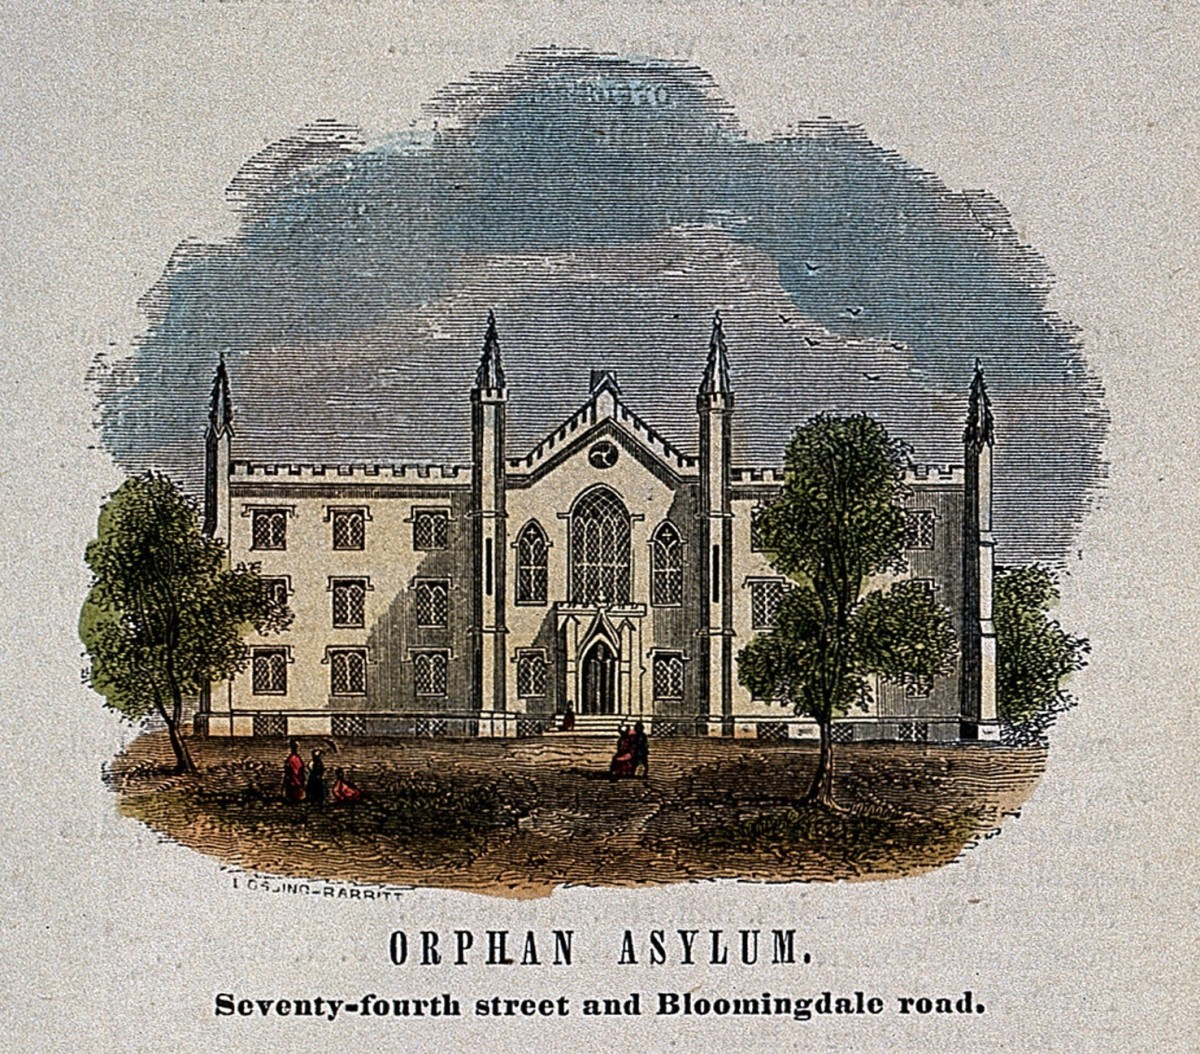 The Orphan Asylum Society of the City of New York